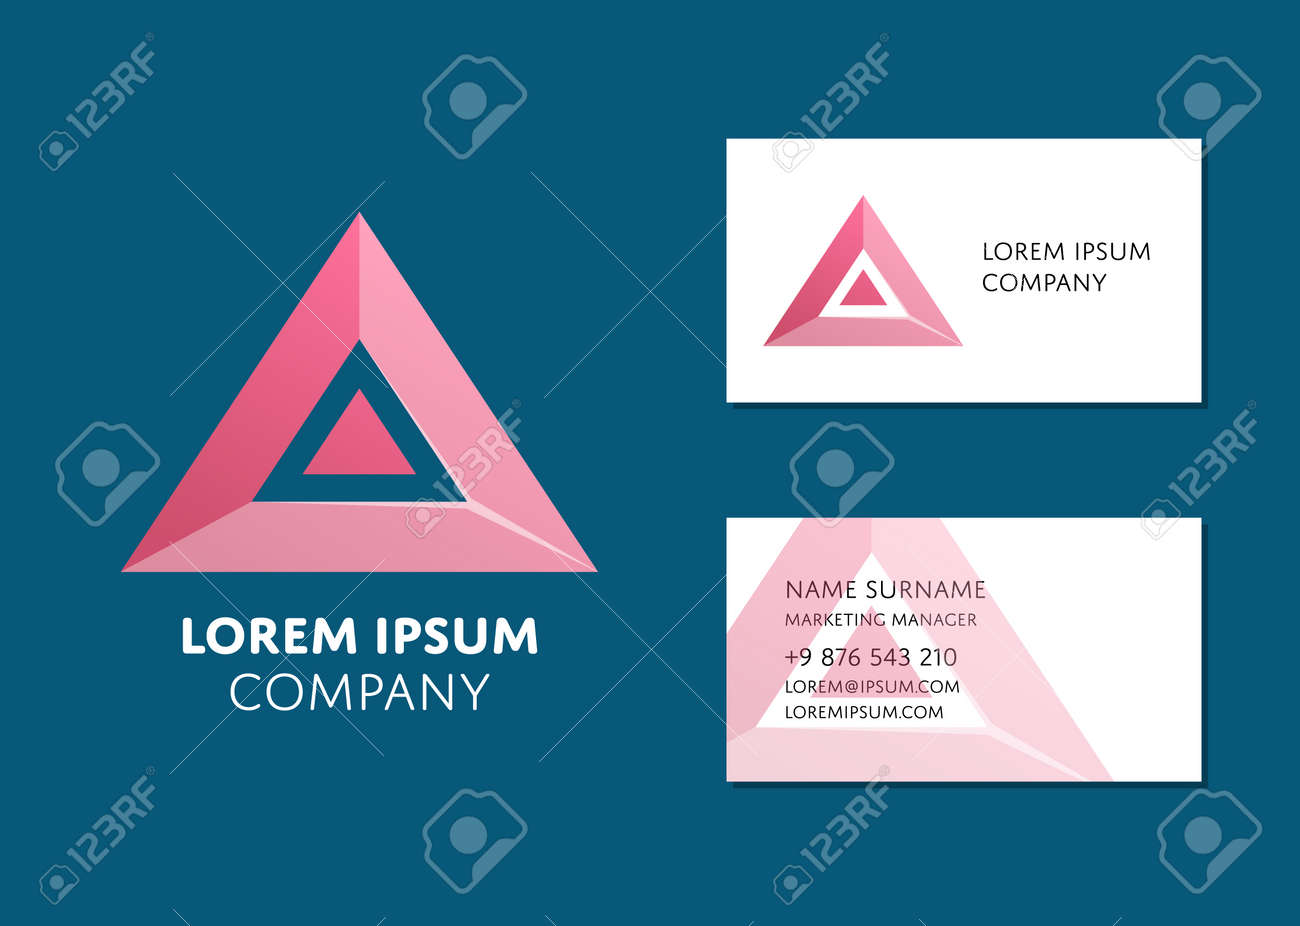 Creative business card template with red triangle logo name creative business card template with red triangle logo name work position phone accmission Choice Image